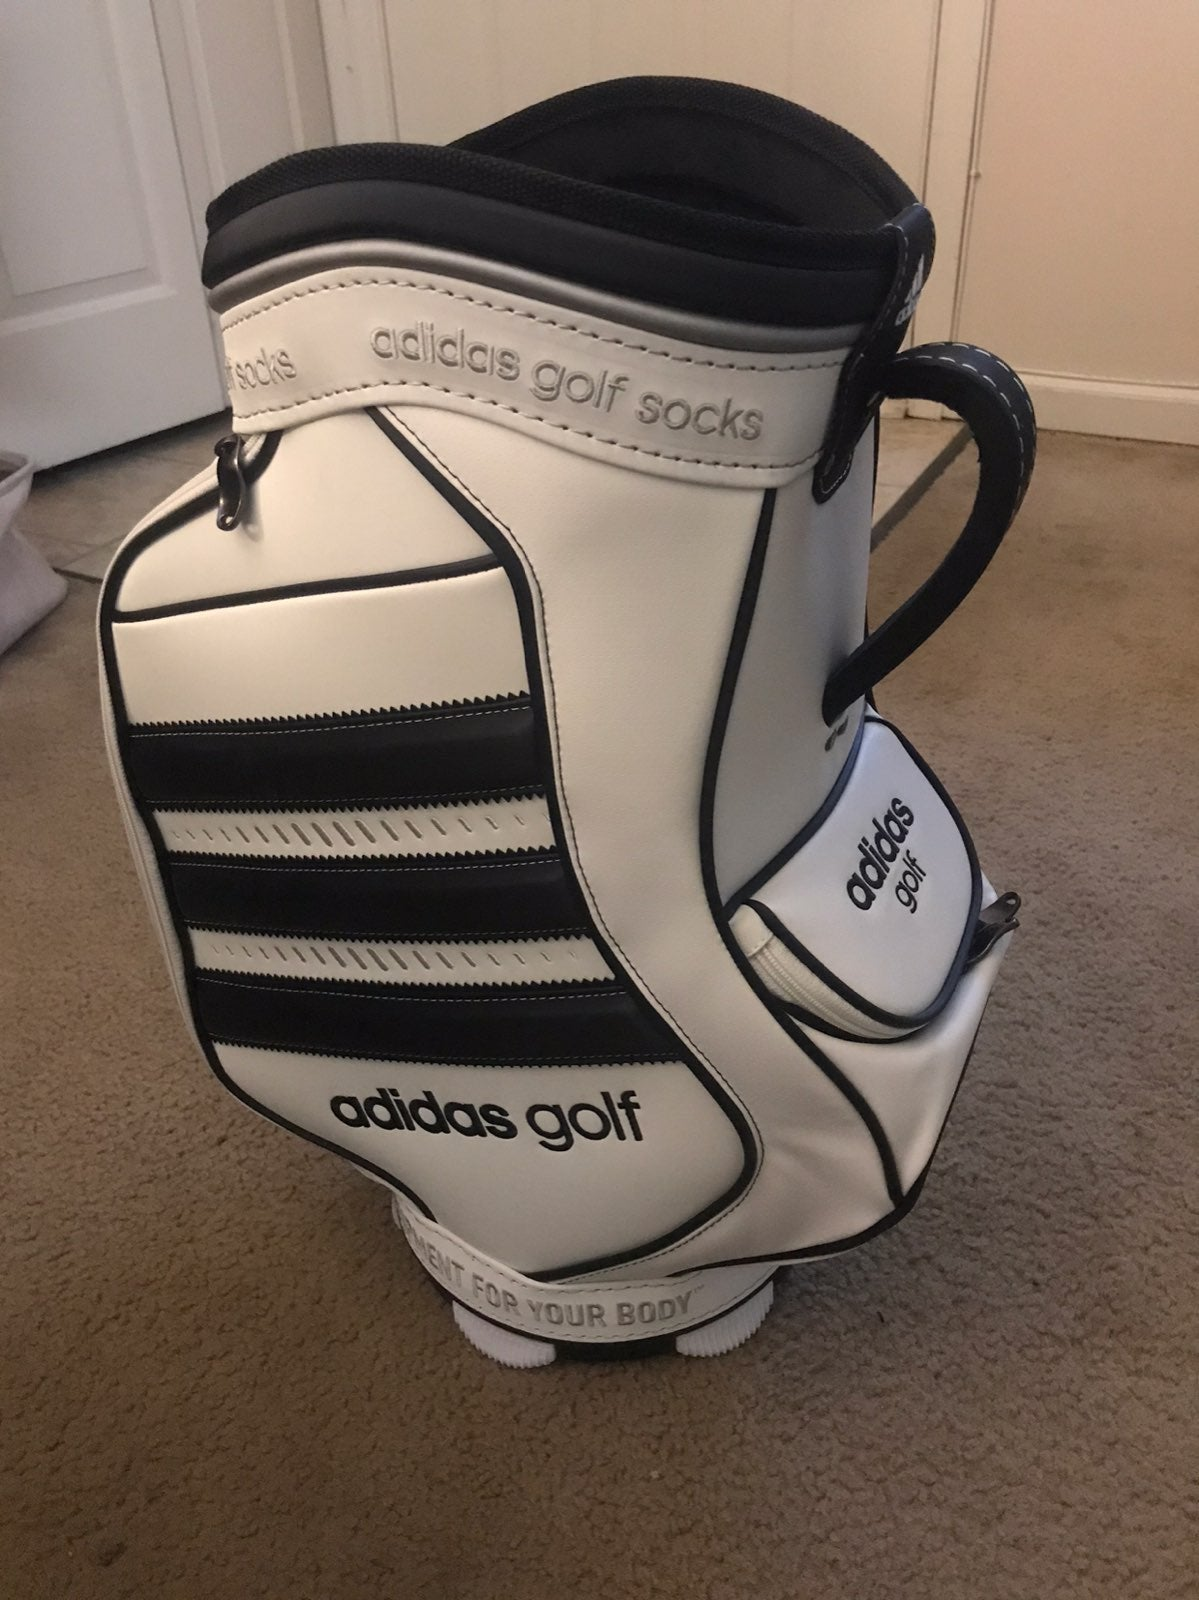 Mini Adidas Golf Bag